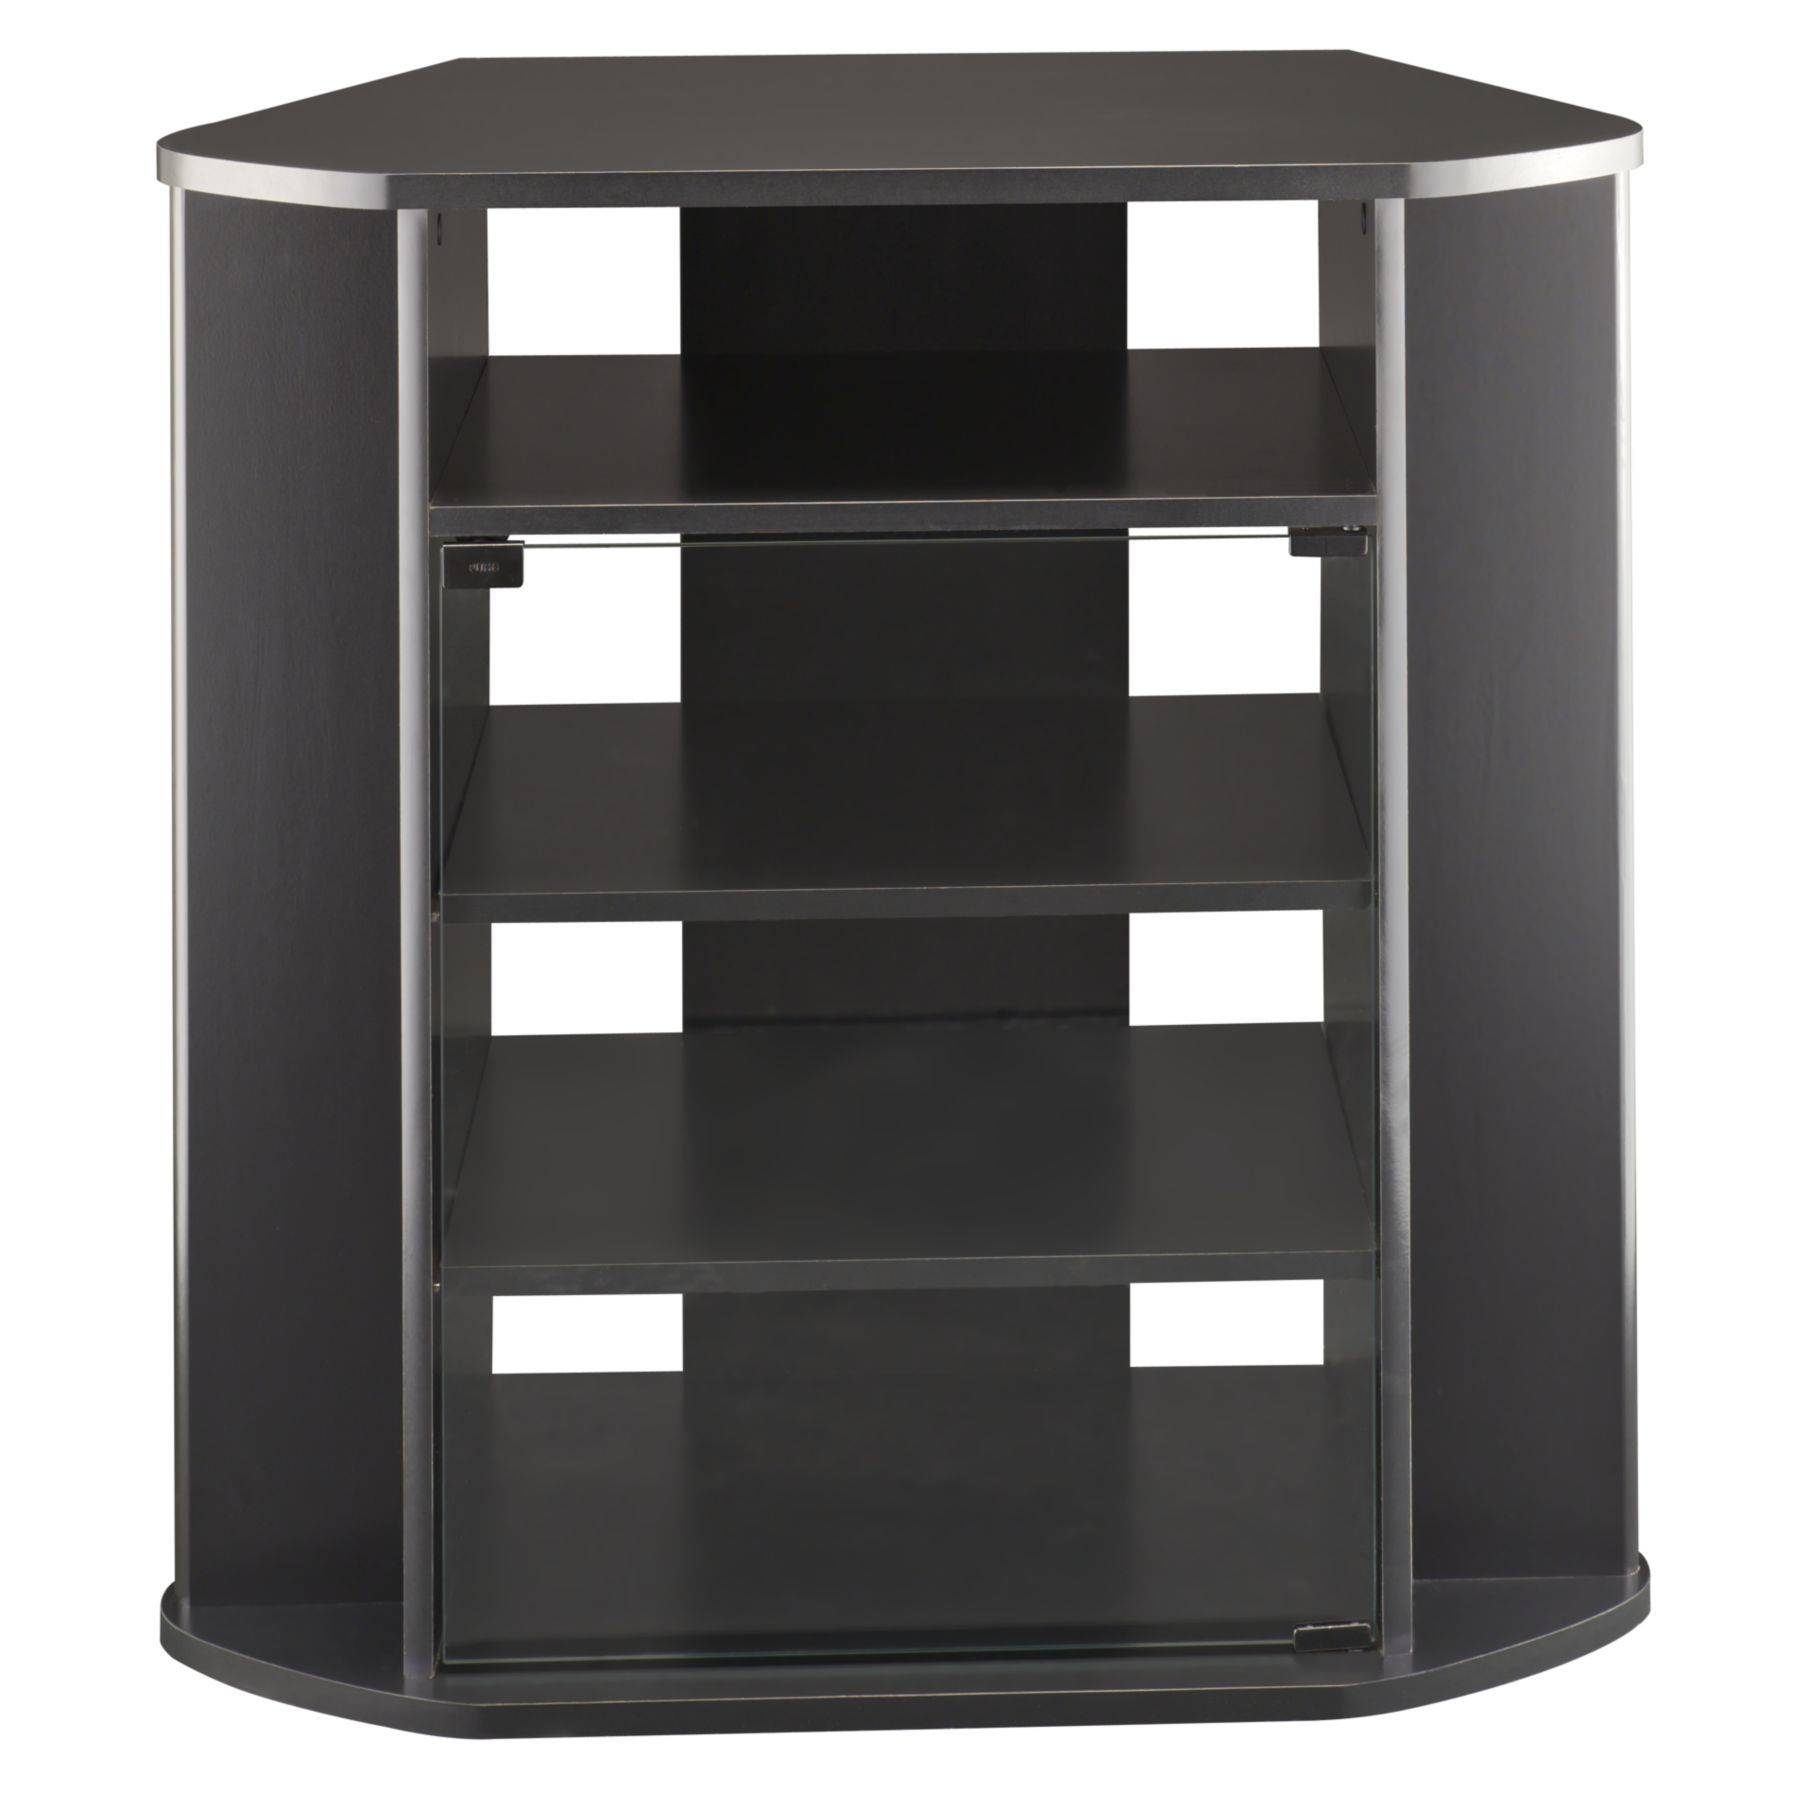 Furniture. Tall Black Corner Tv Stand With Four Tiwr Shelf And for Corner Tv Unit With Glass Doors (Image 6 of 15)